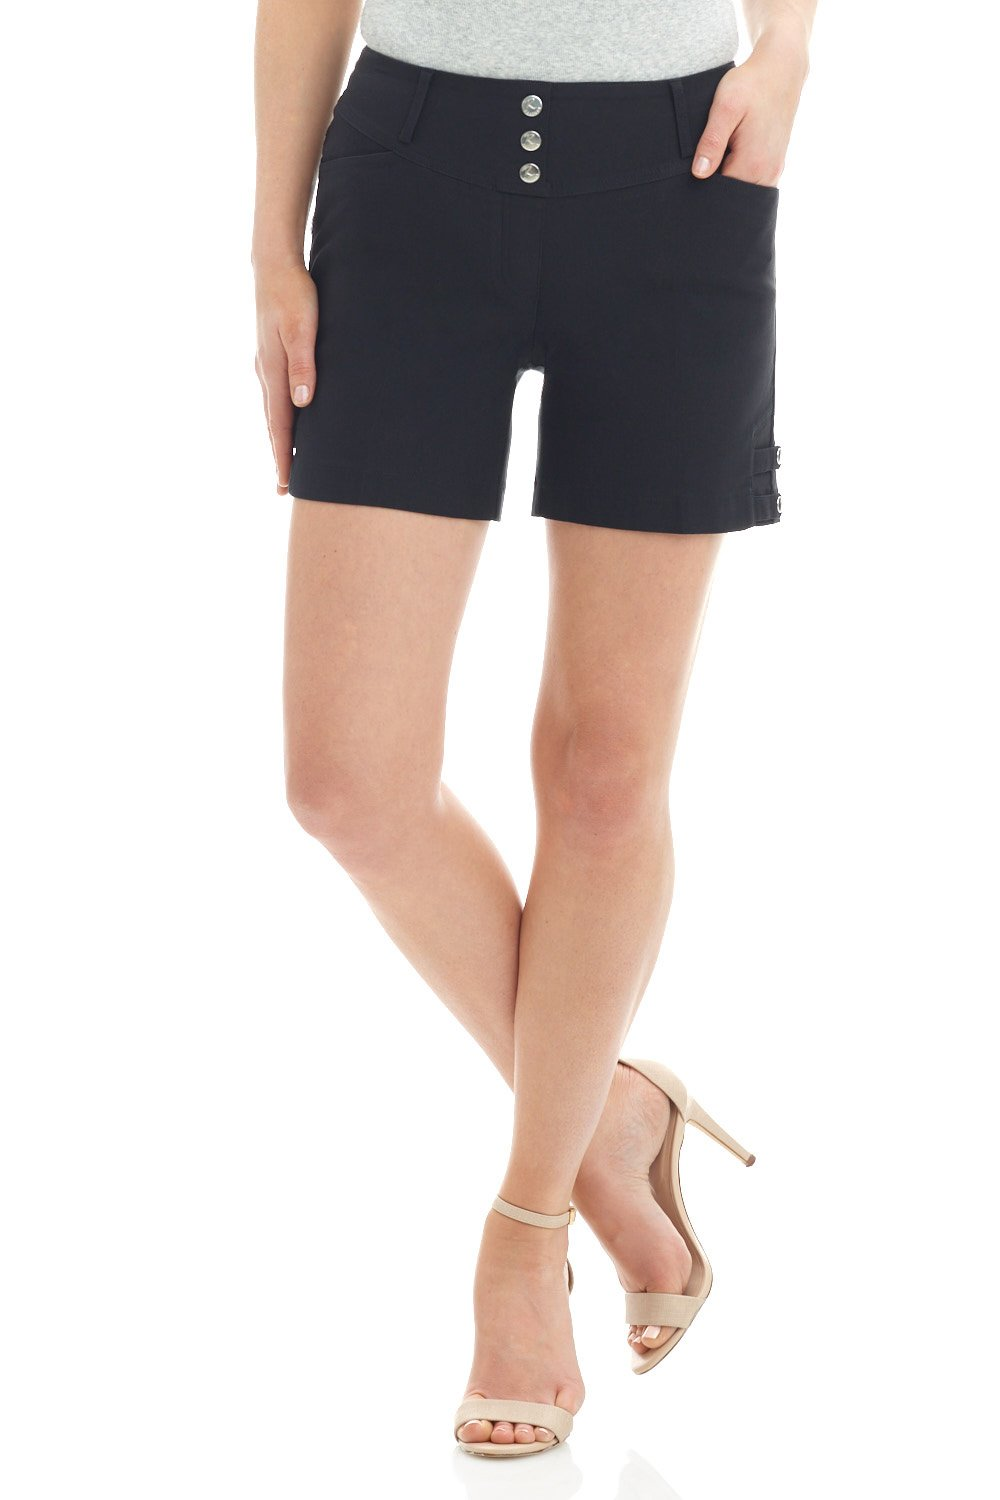 REKUCCI Women's Ease Into Comfort Stretchable Pull-On 5'' Slimming Tab Short (12,Black)